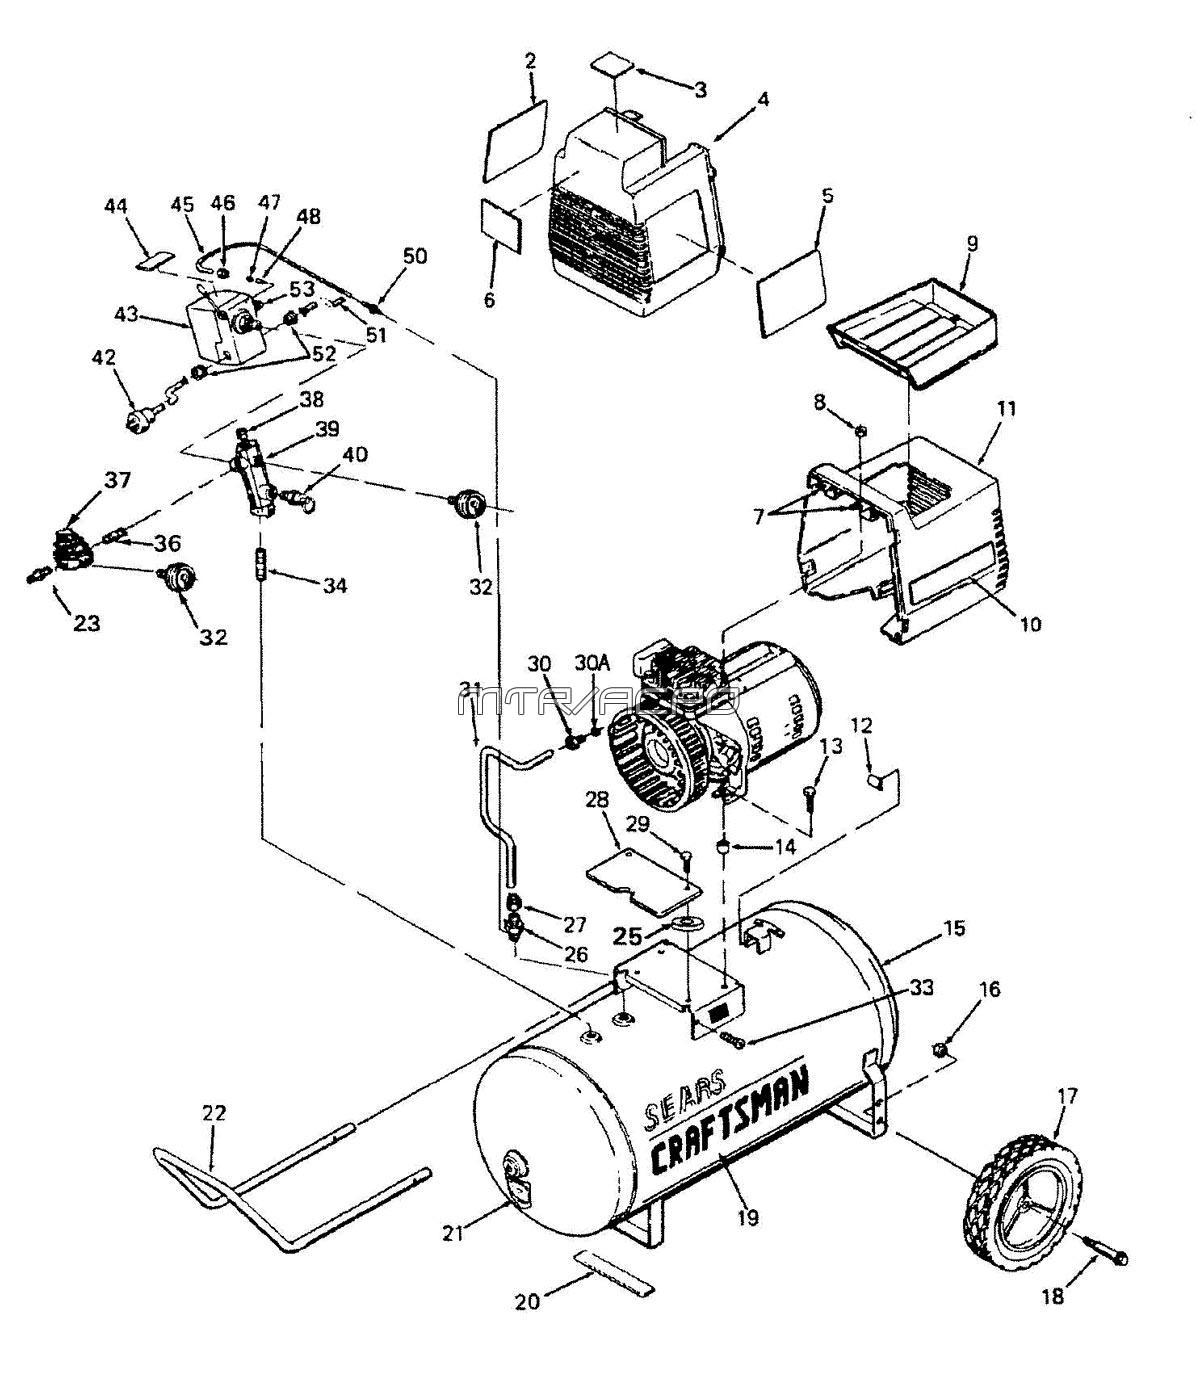 craftsman_919.155731_compressor_parts Radio Wiring Diagram Chevy Cavalier on parts diagram body, sport package for, ls wide body kit, custom parts, pcv valve, inside space, interior coupe, body kit sedan, rear custum, ignition orielys,